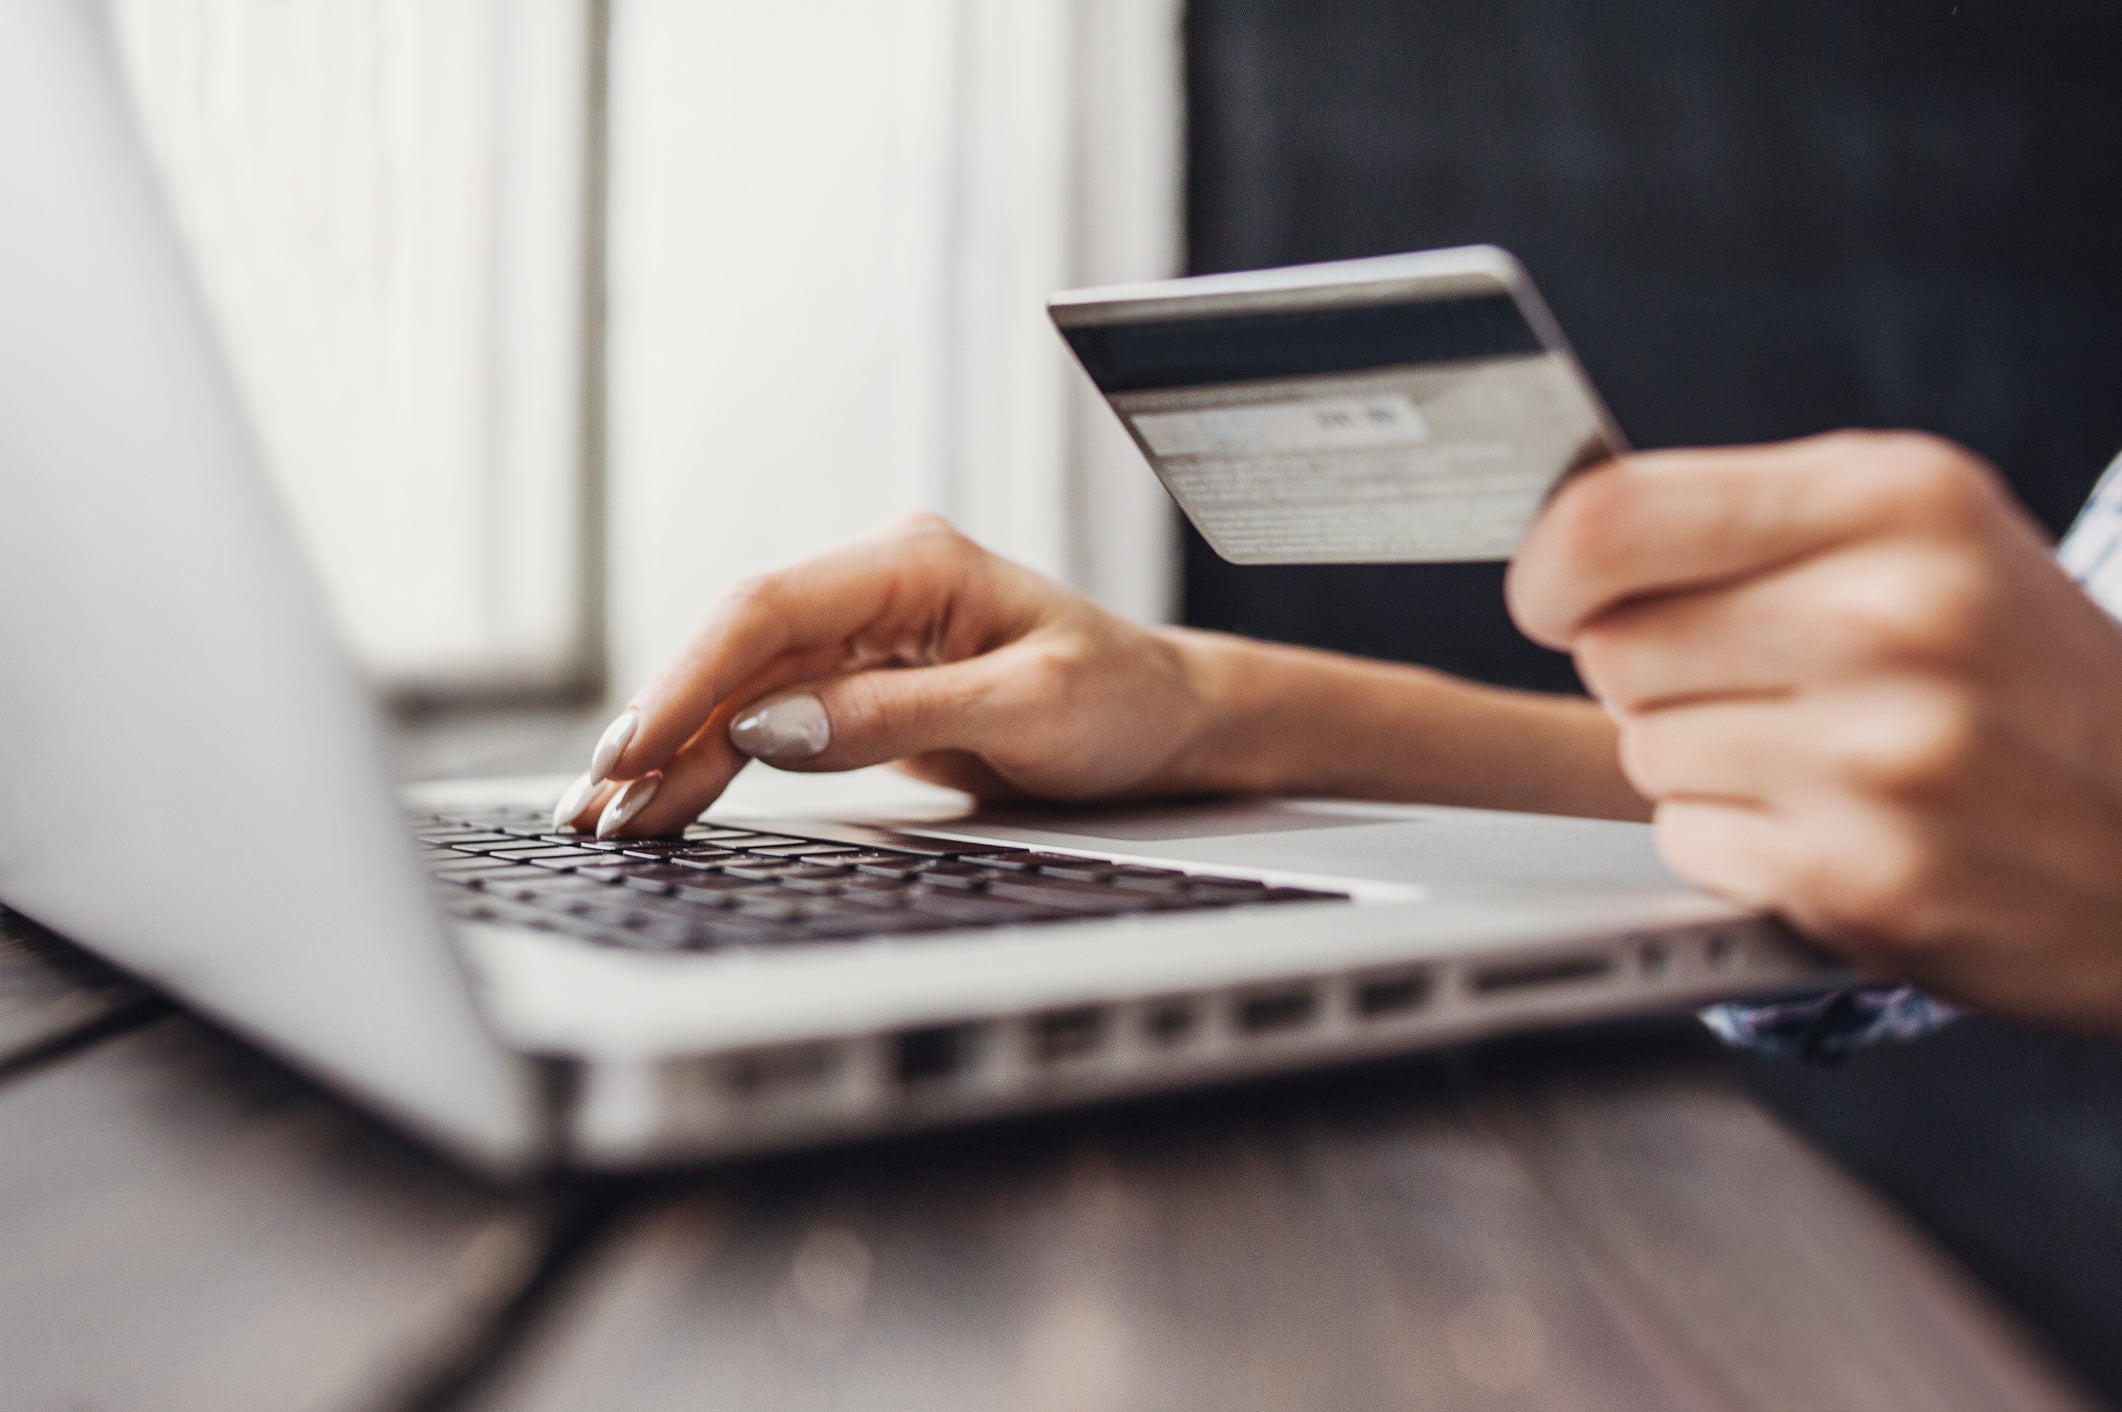 Hands holding a credit card while typing on a laptop